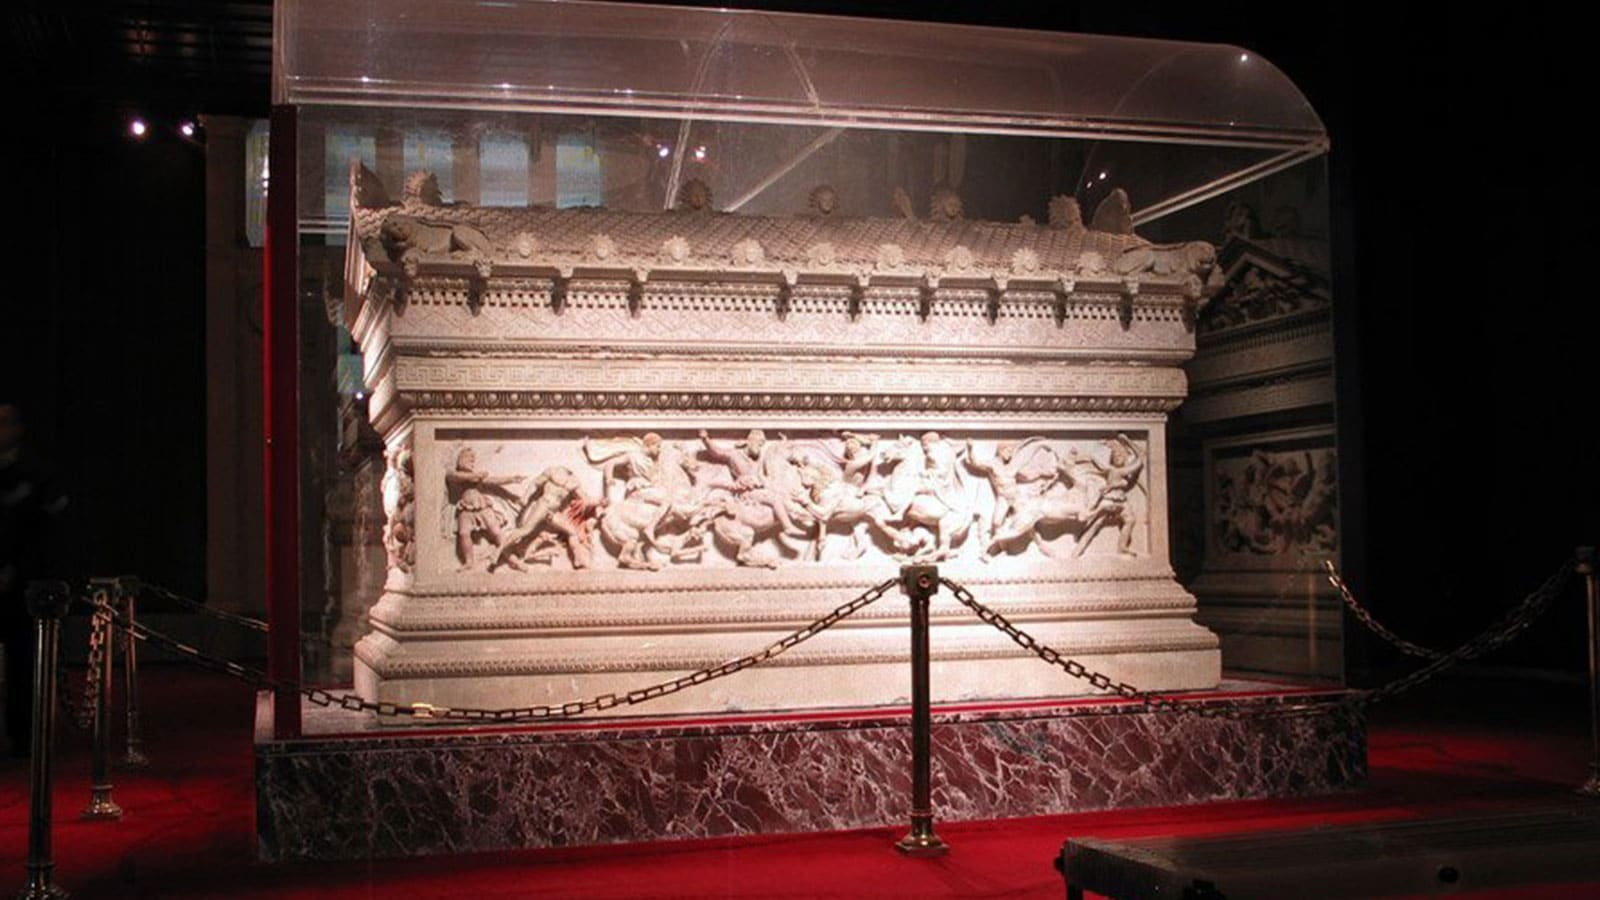 The Alexander Sarcophagus at Istanbul Archaeology Museum